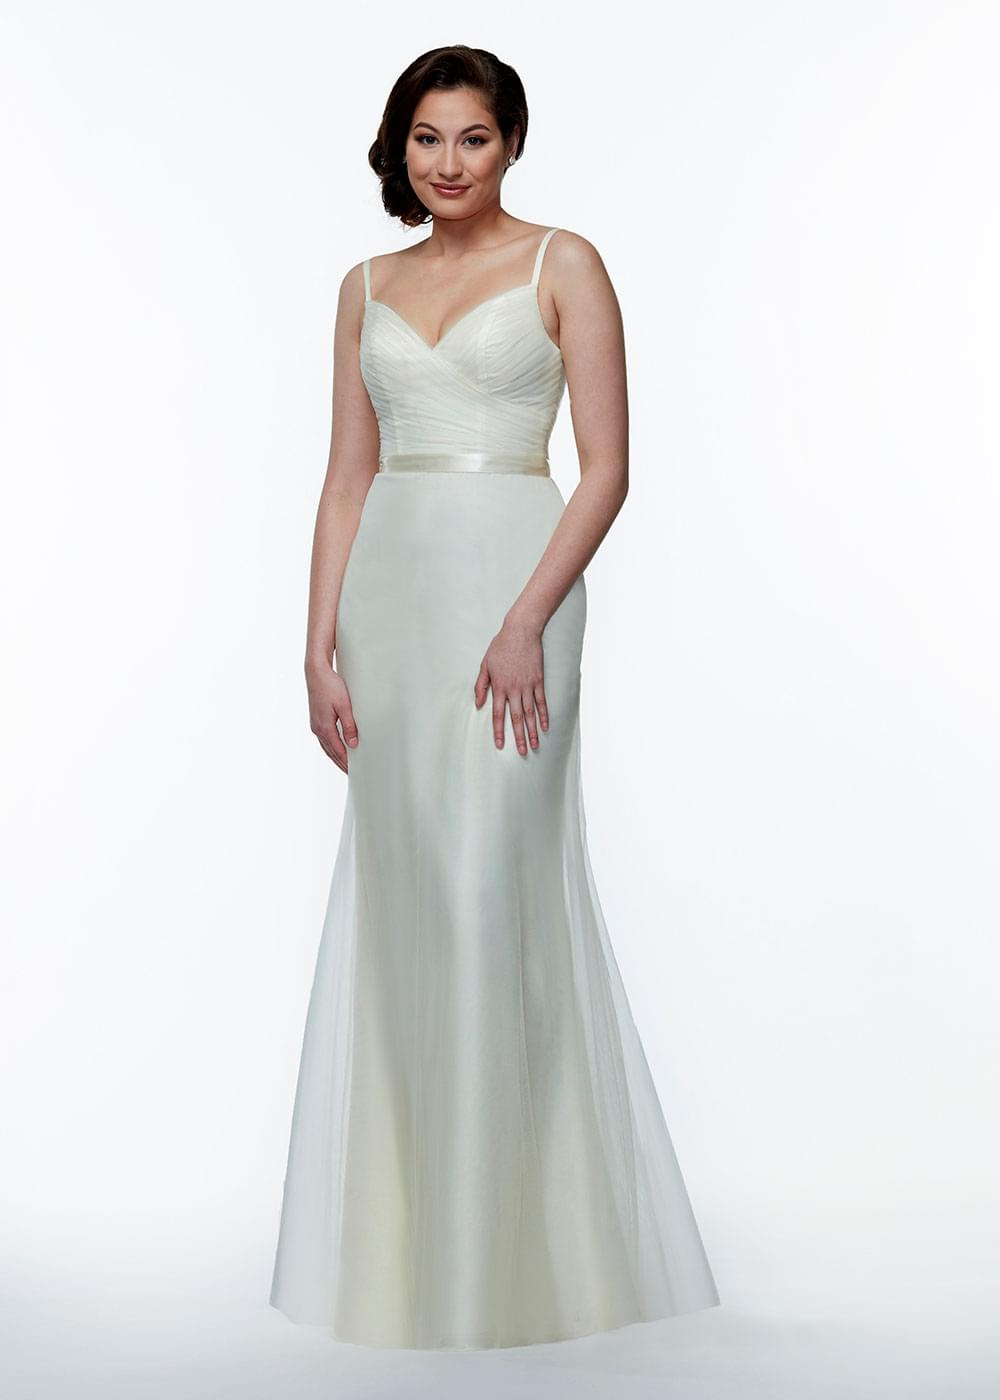 80069 Dresses with Straps By Ashdon